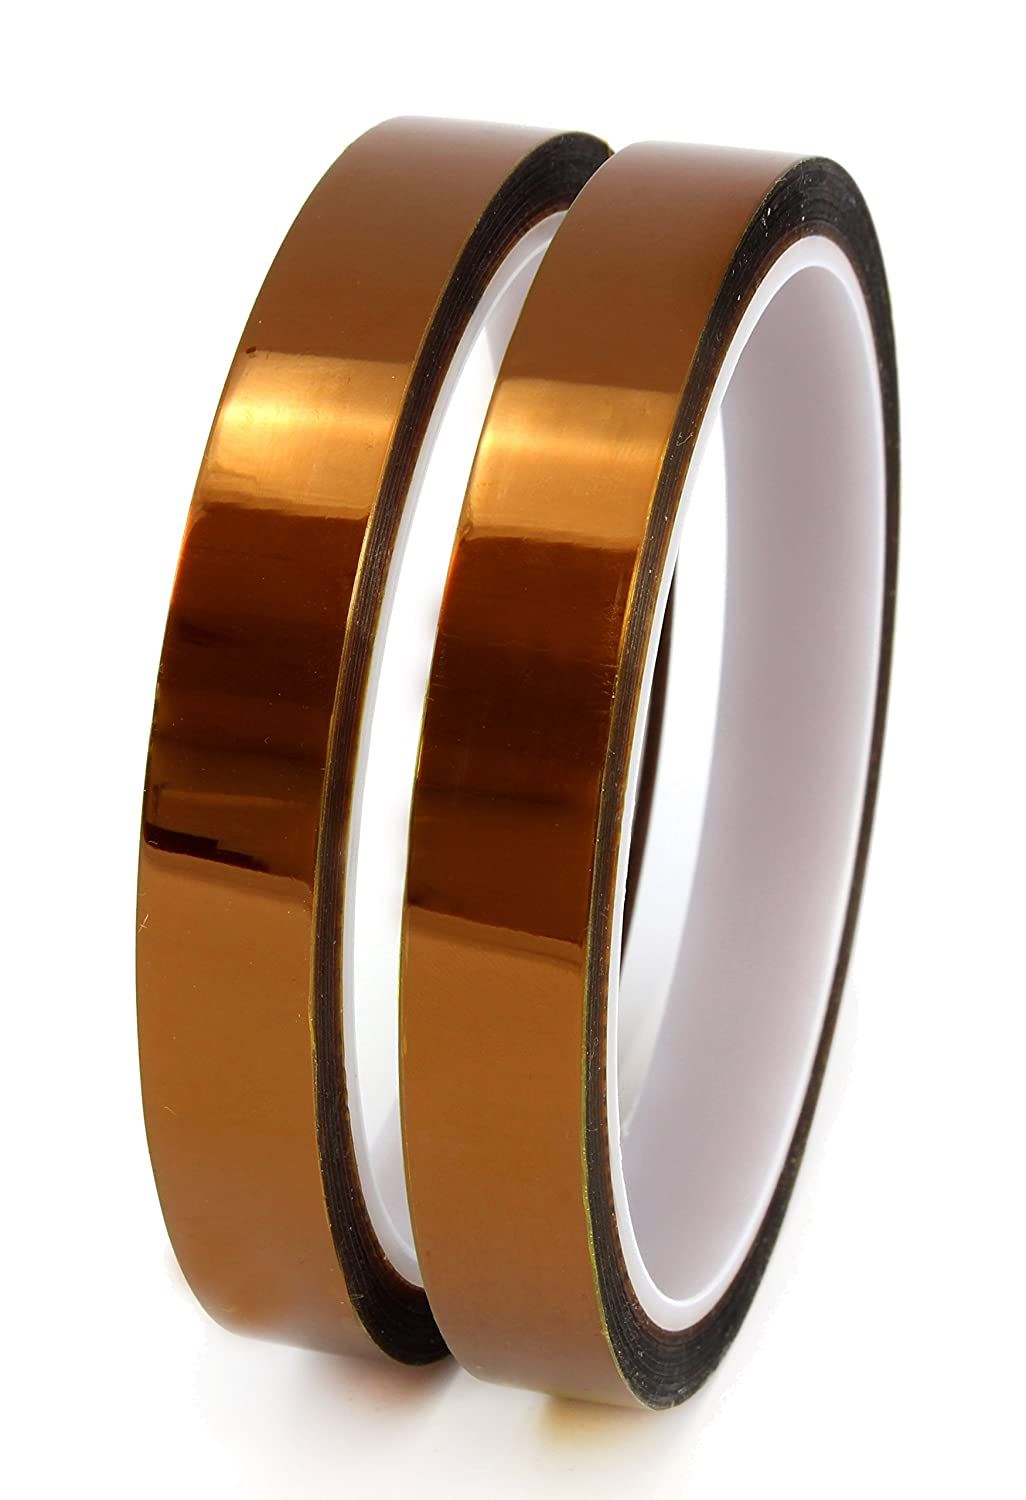 (2-Pack) 1 Mil Hi-Temp Kapton Tape; 2 Roll Set of Polyimide Film Tape for 3D Printing, Soldering, Insulating Circuit Boards & More! (1/2 Inch)